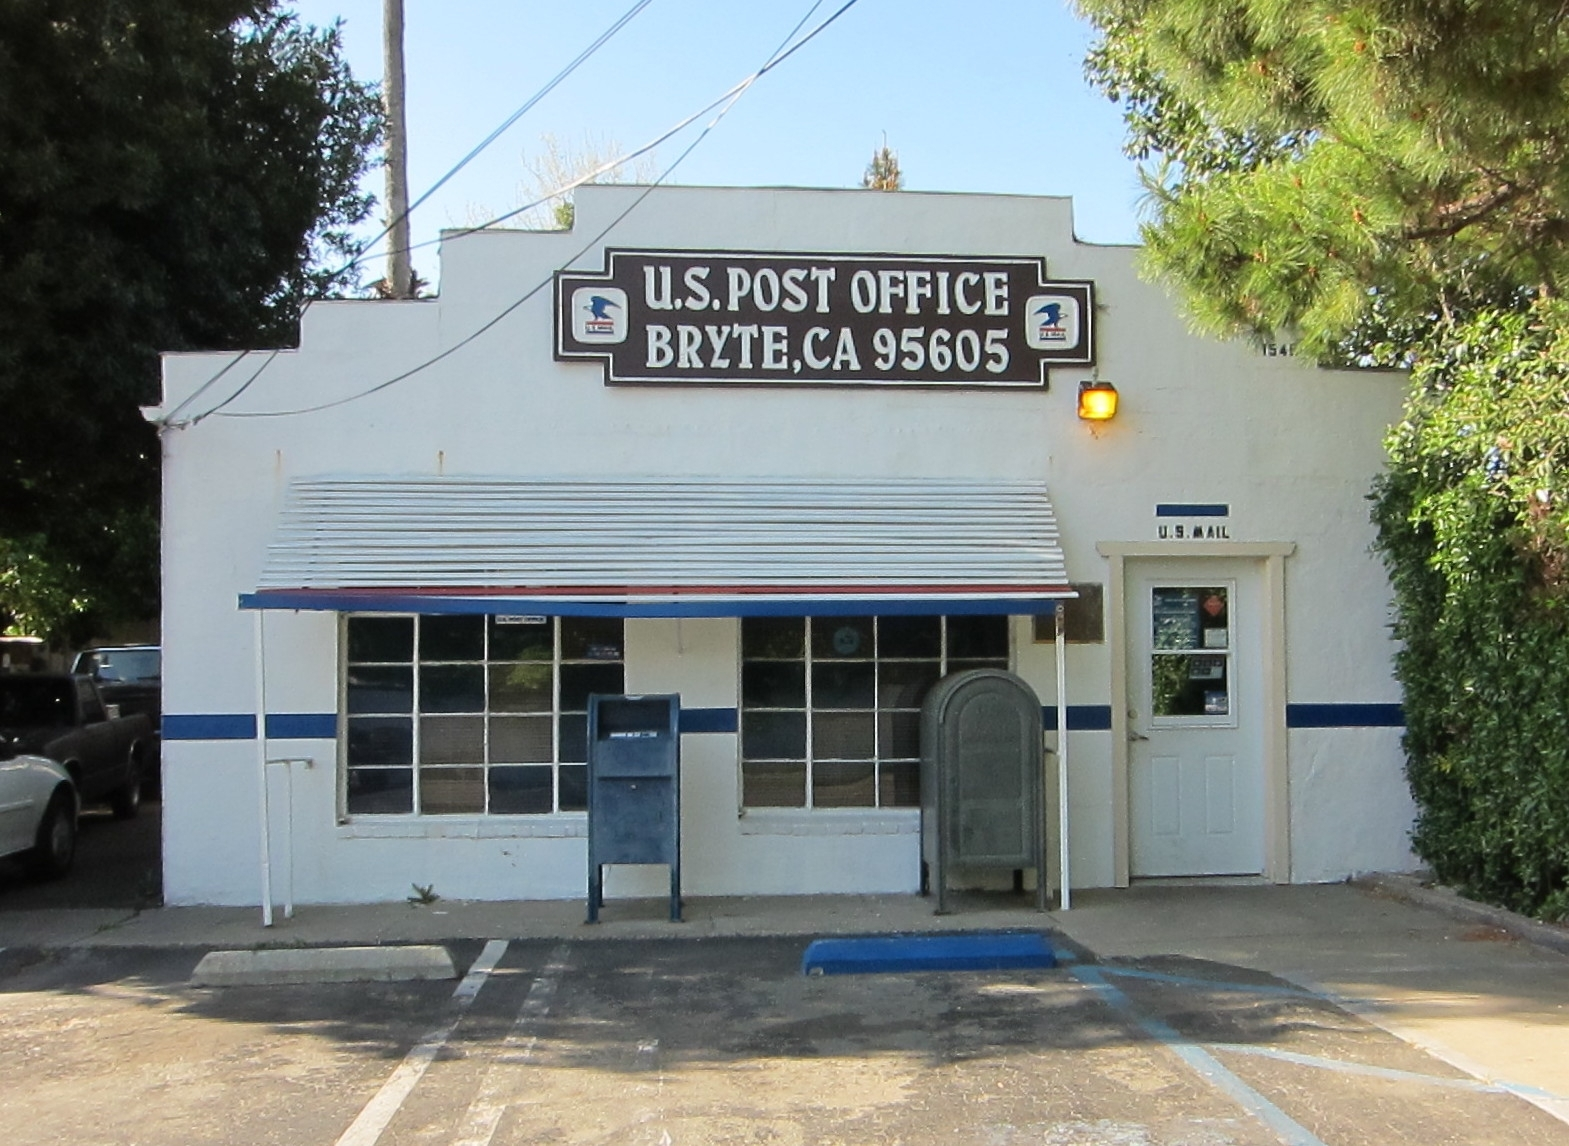 Bryte Post Office and Marker in West Sacramento